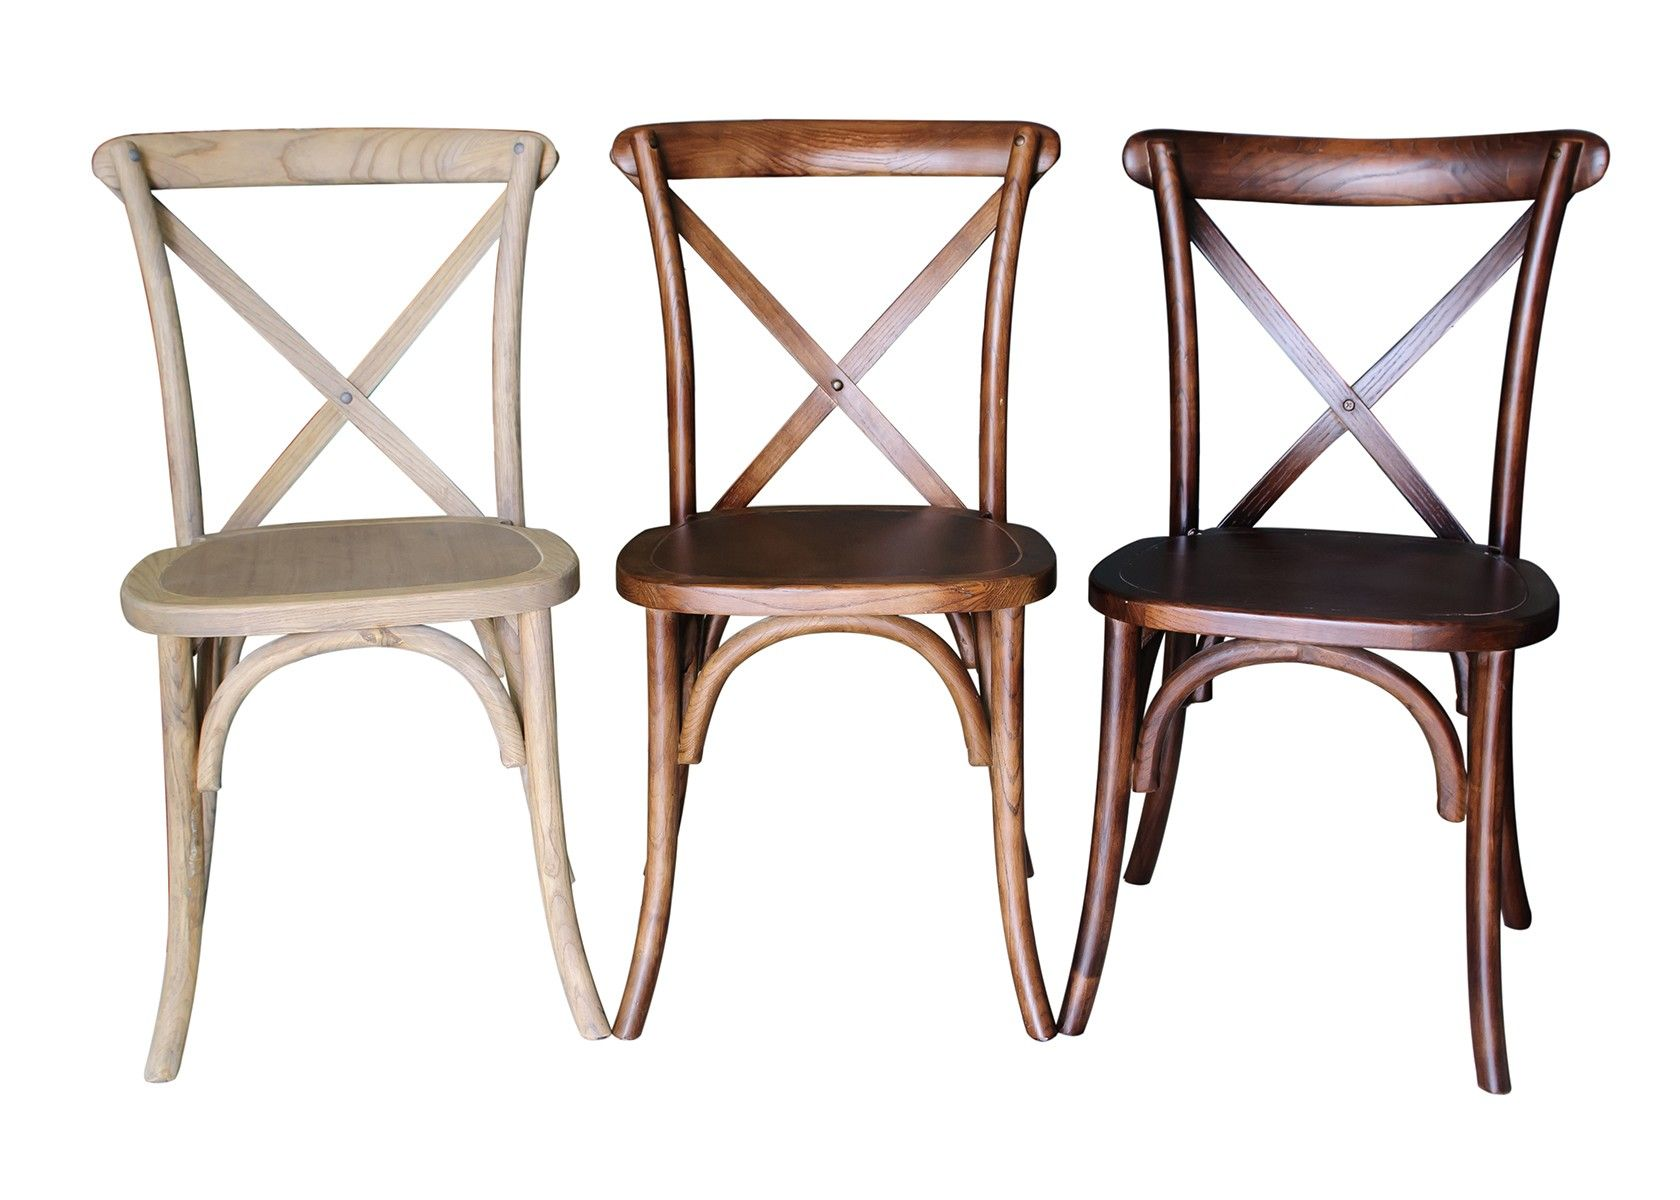 XBACK CHAIRS Be the first to catch everyone s eye with the latest